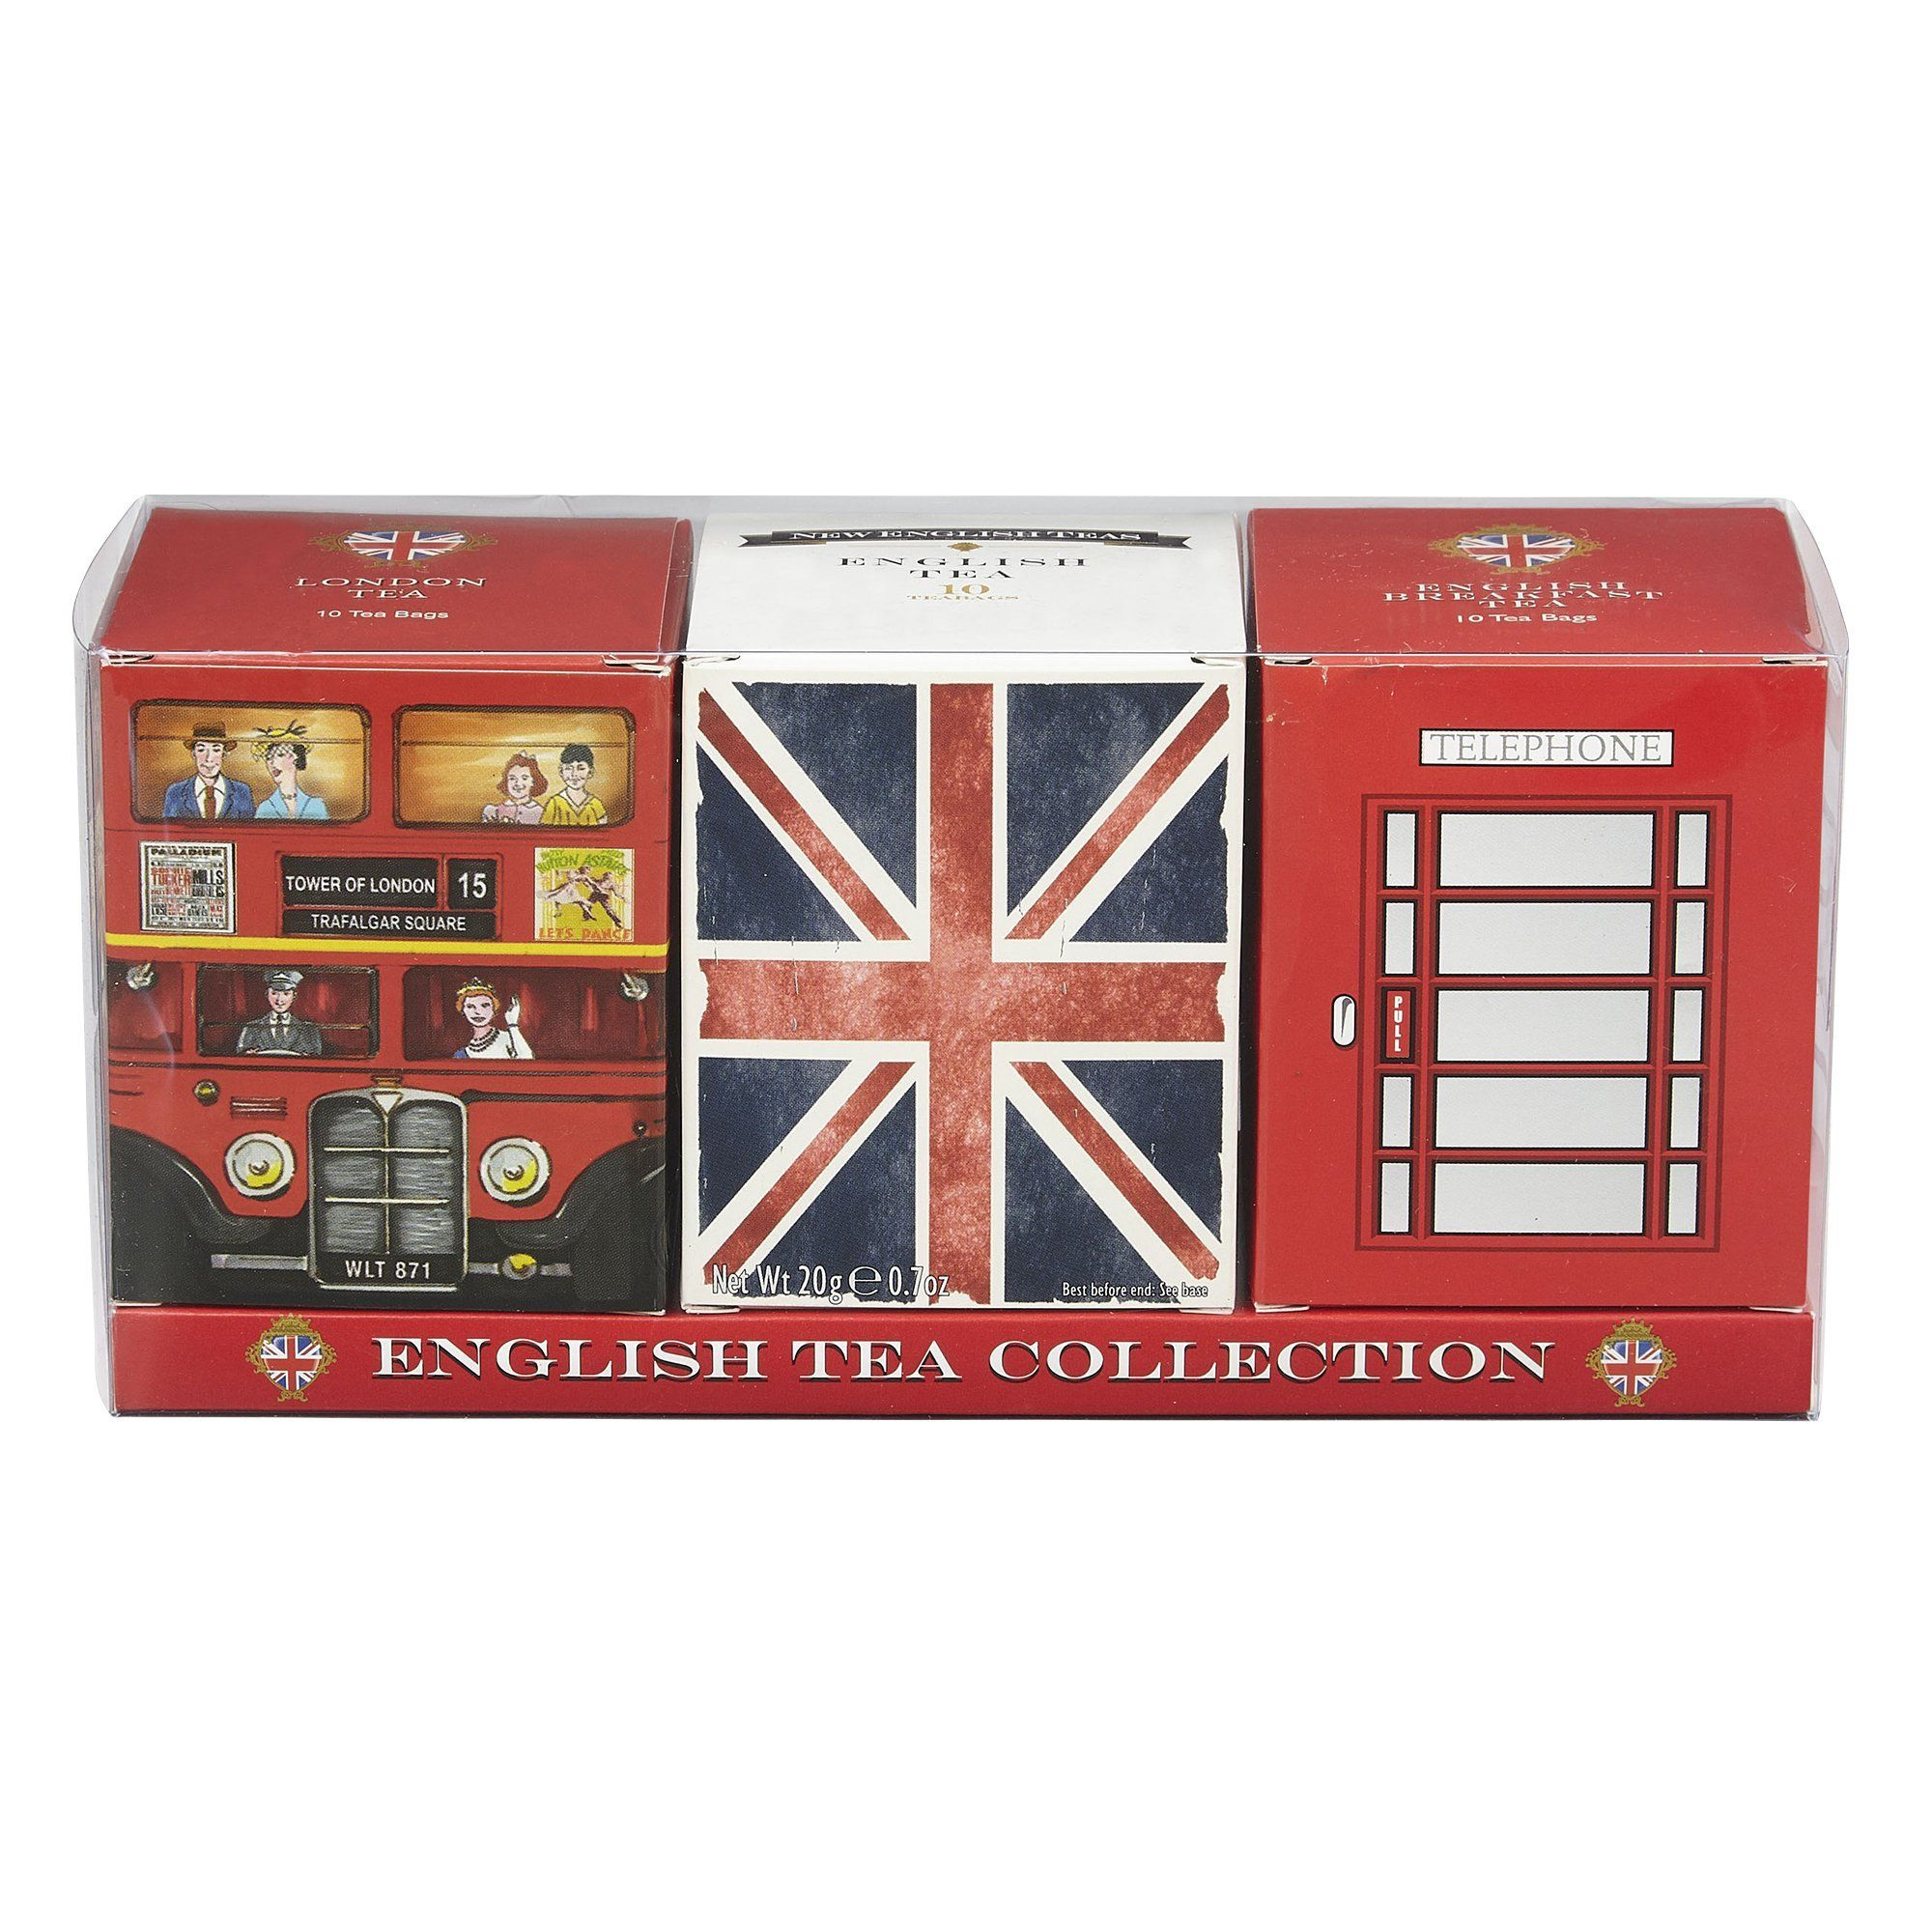 English Tea Collection Triple Carton Gift Pack Black Tea New English Teas